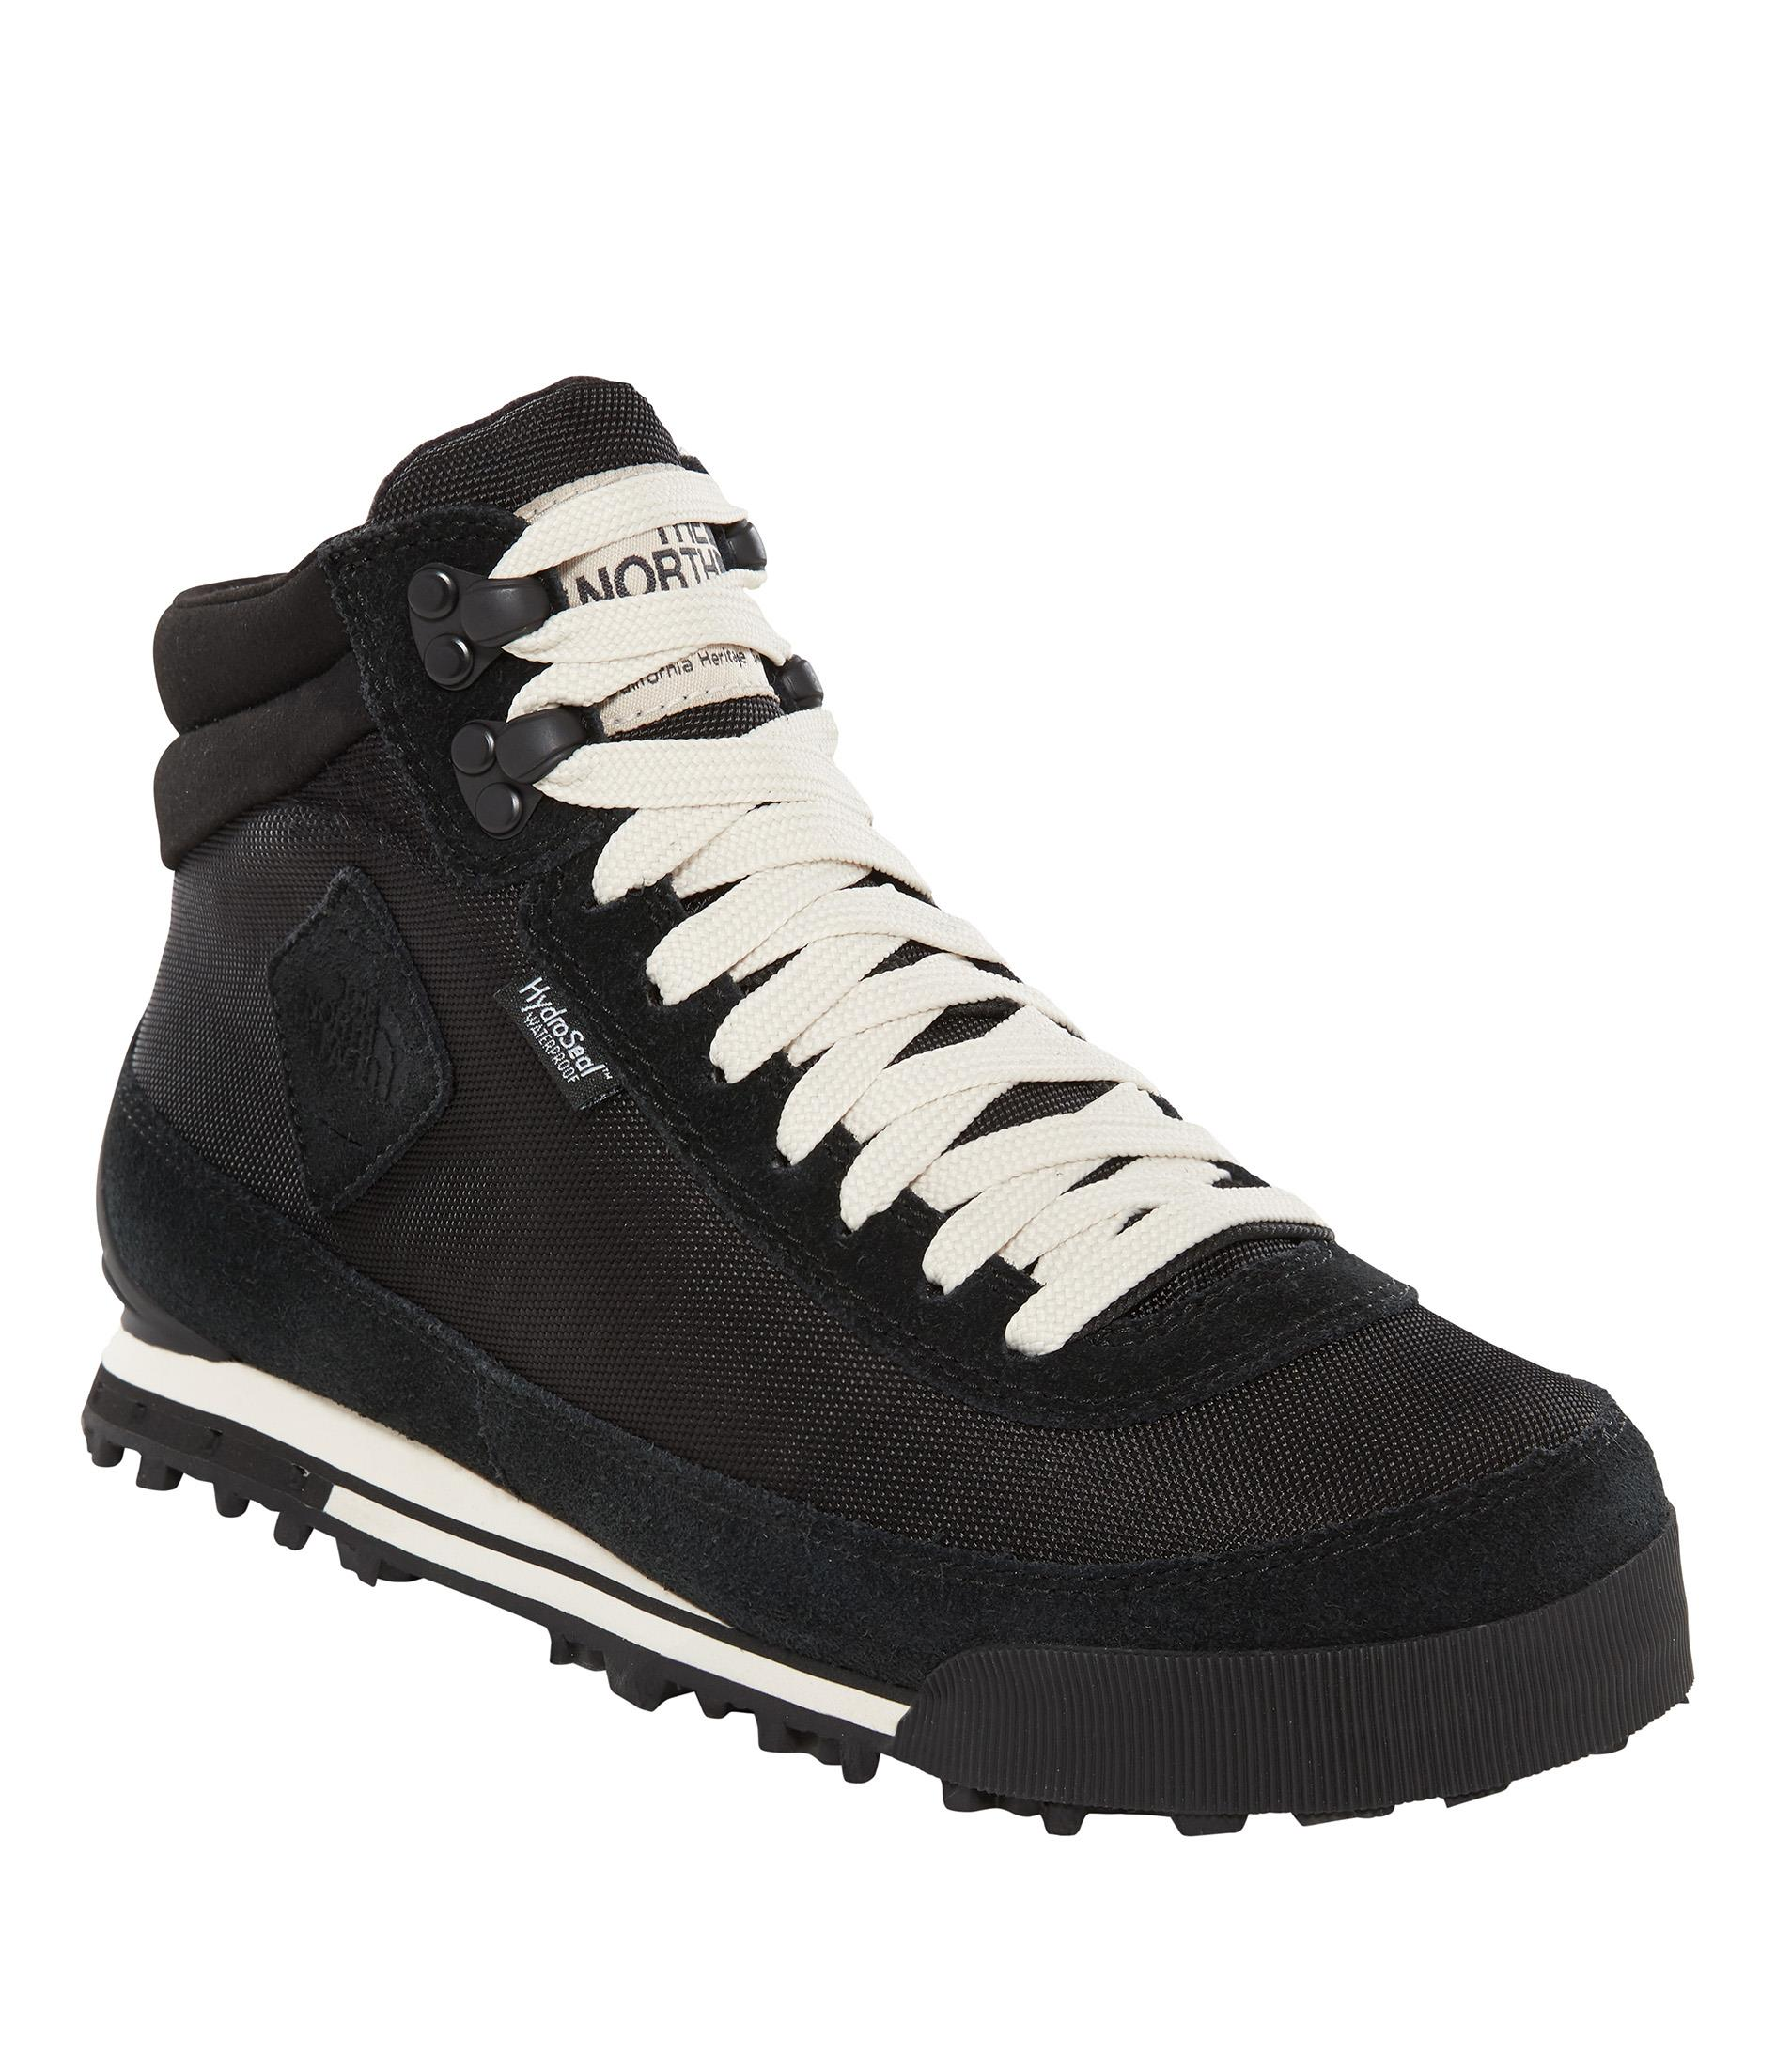 The North Face Kadın Back 2 Berkeley Boot 2 Ayakkabı T0A1MFLQ6